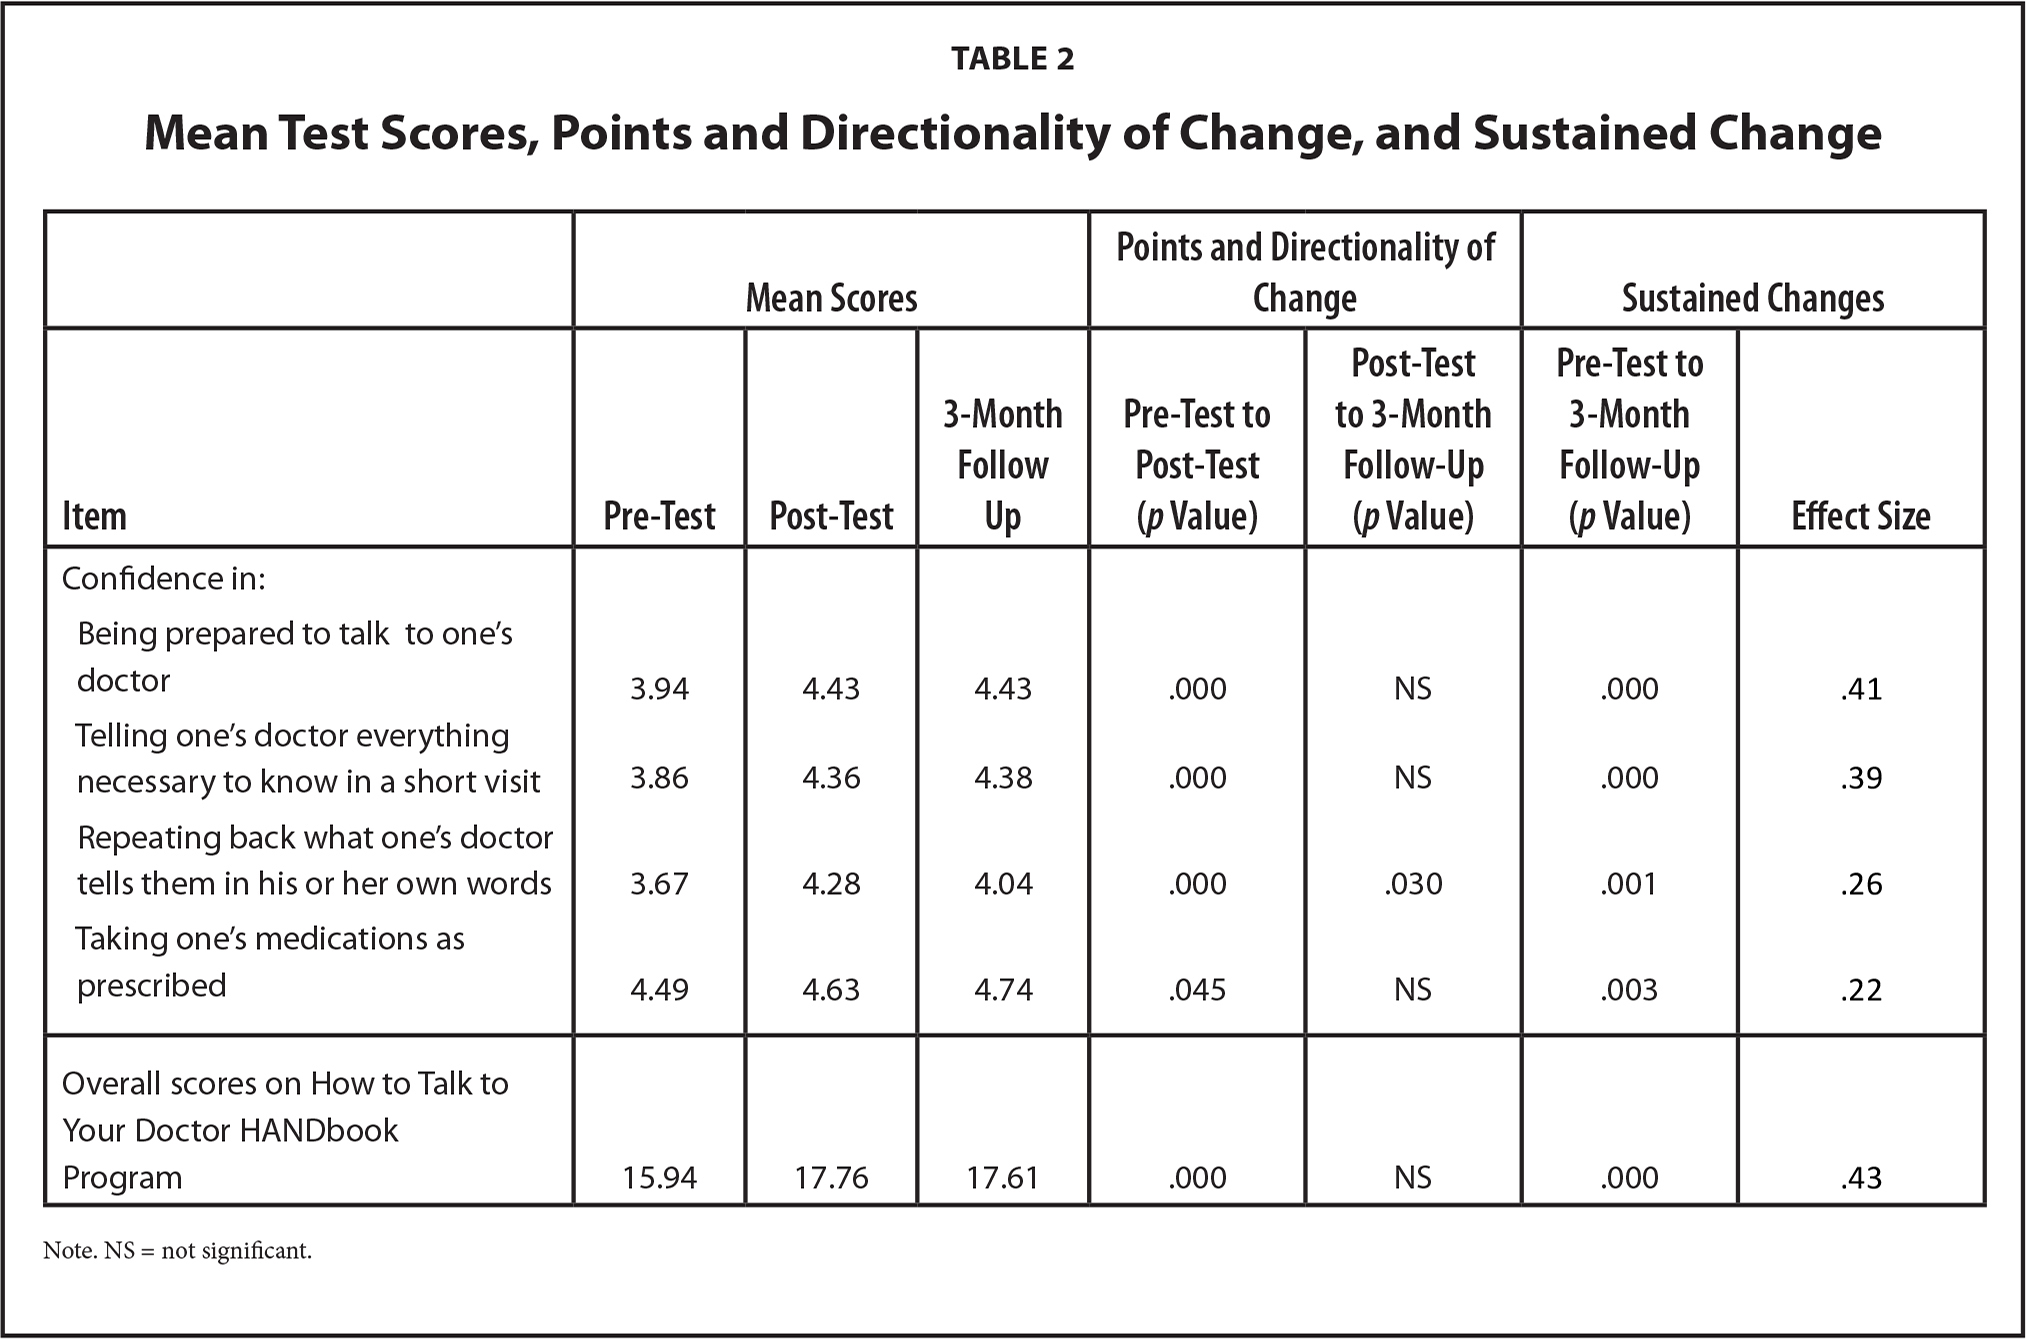 Mean Test Scores, Points and Directionality of Change, and Sustained Change